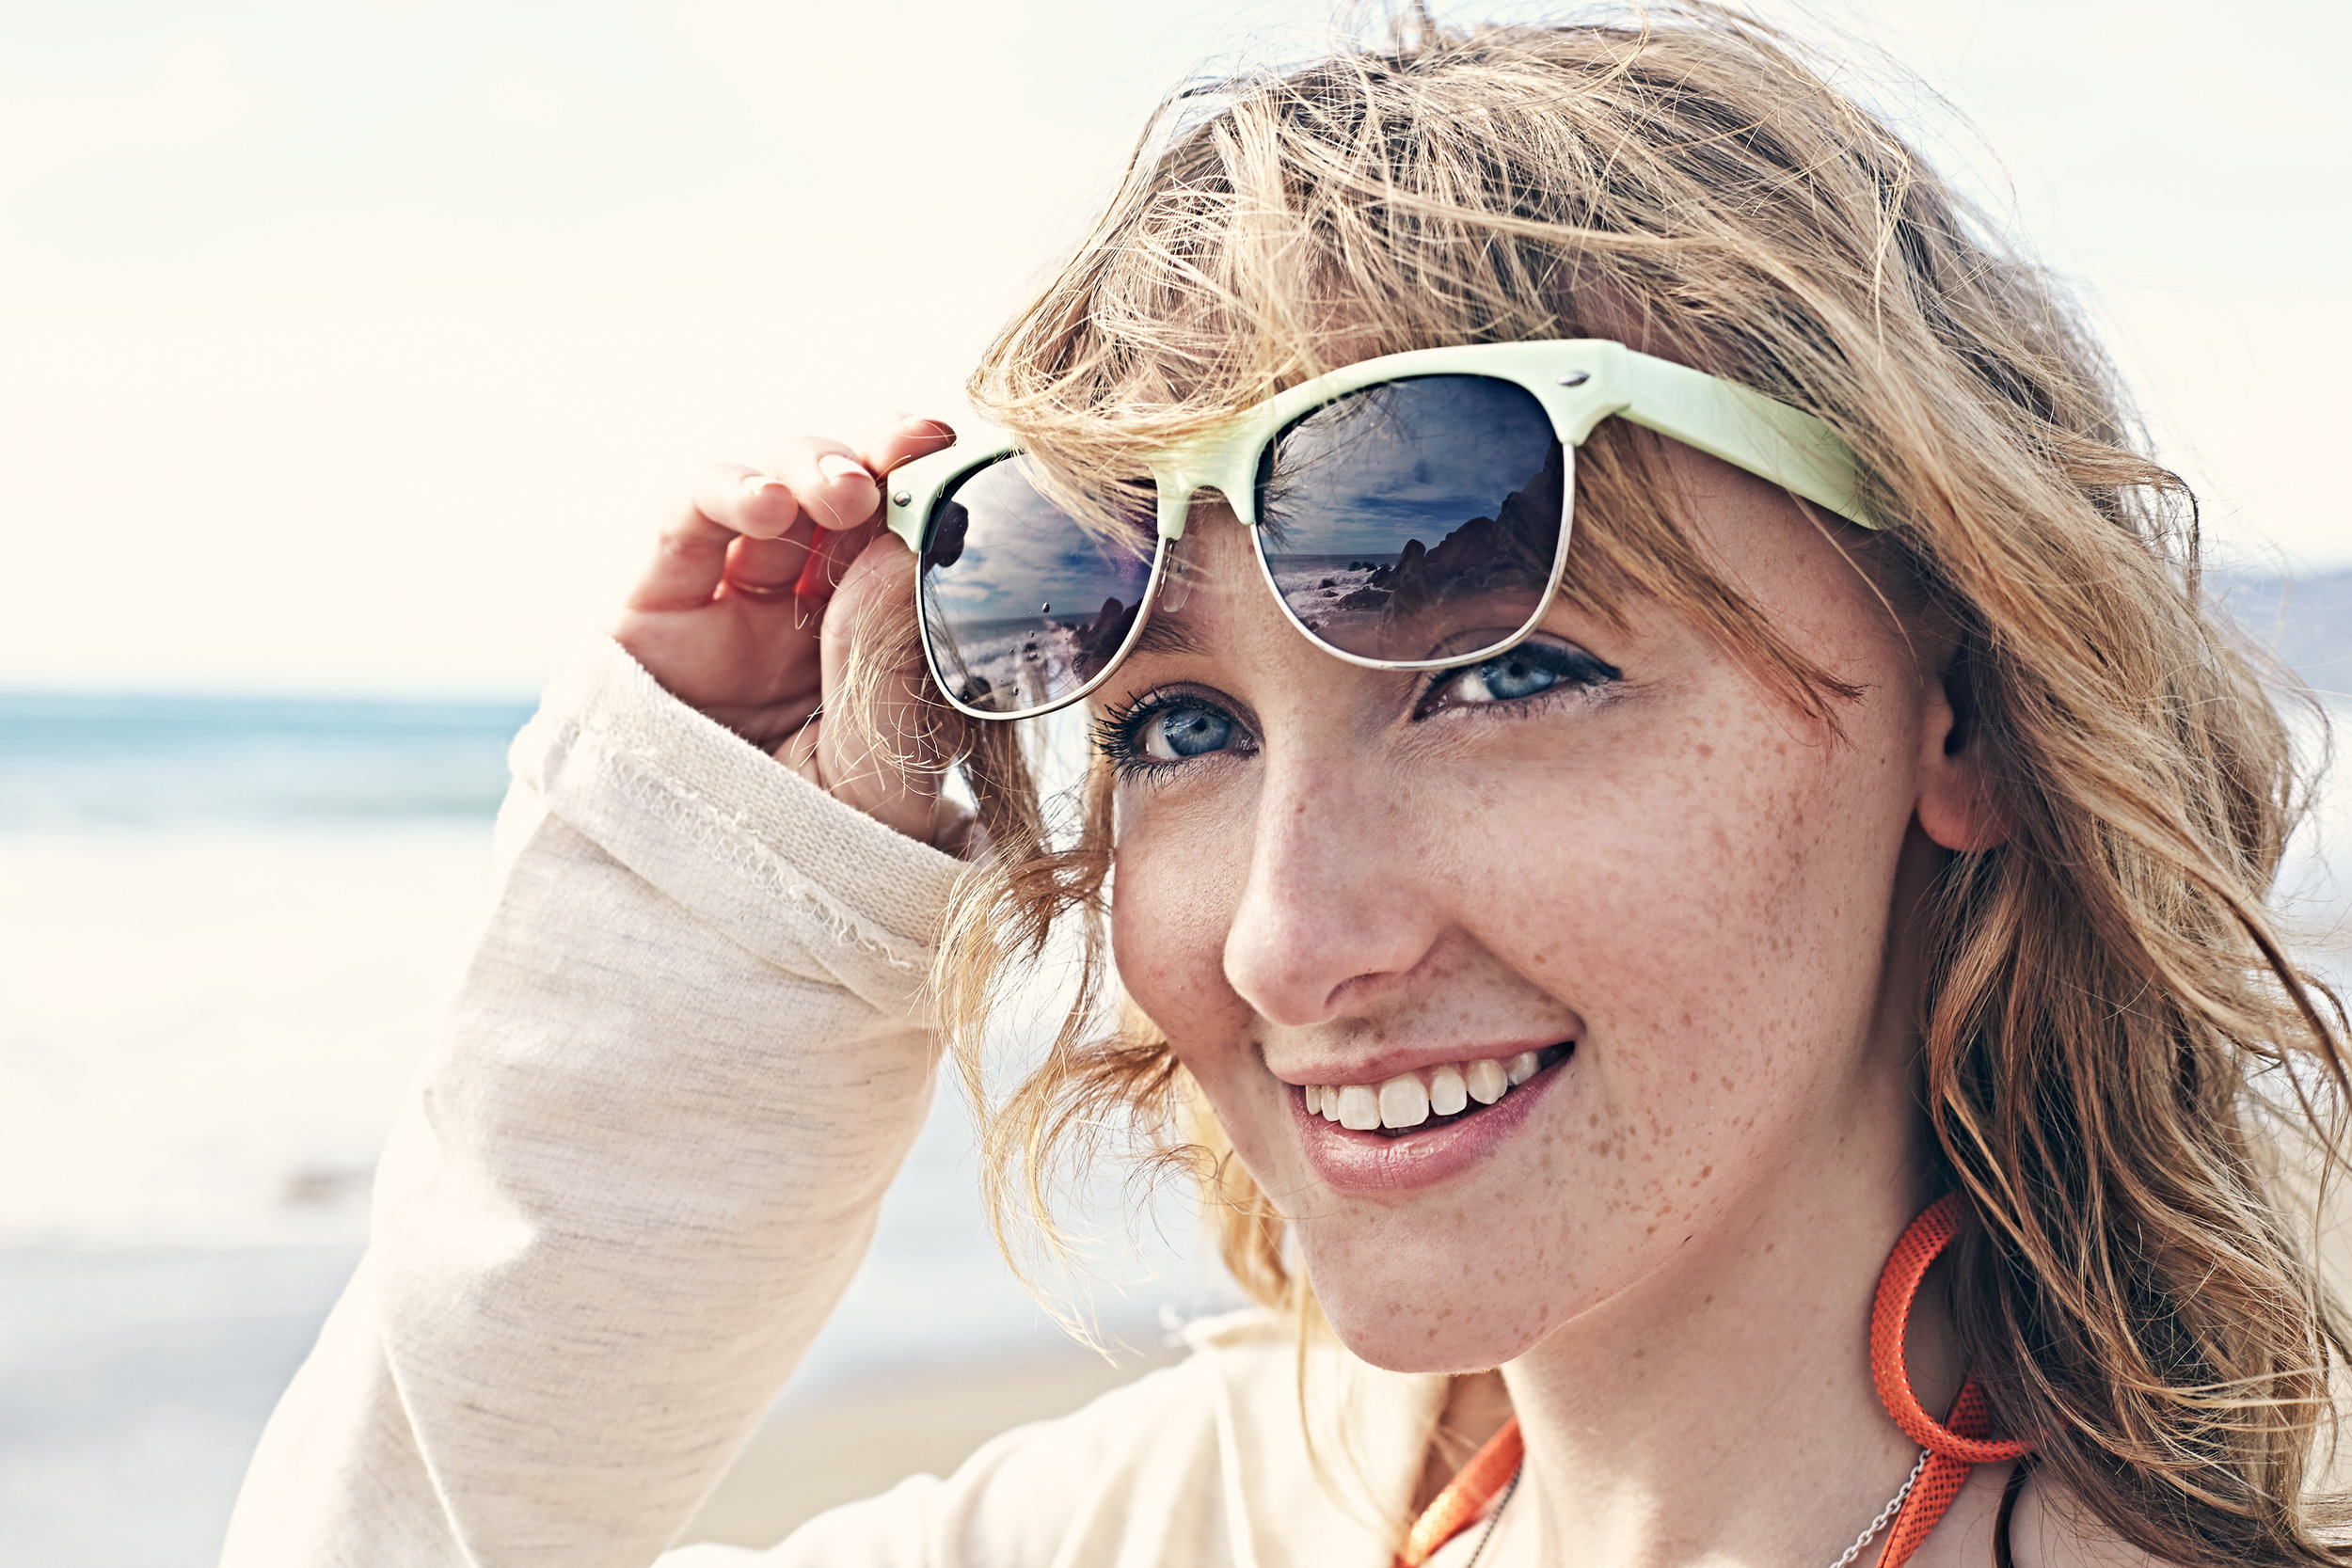 Young woman in sunglasses on the beach